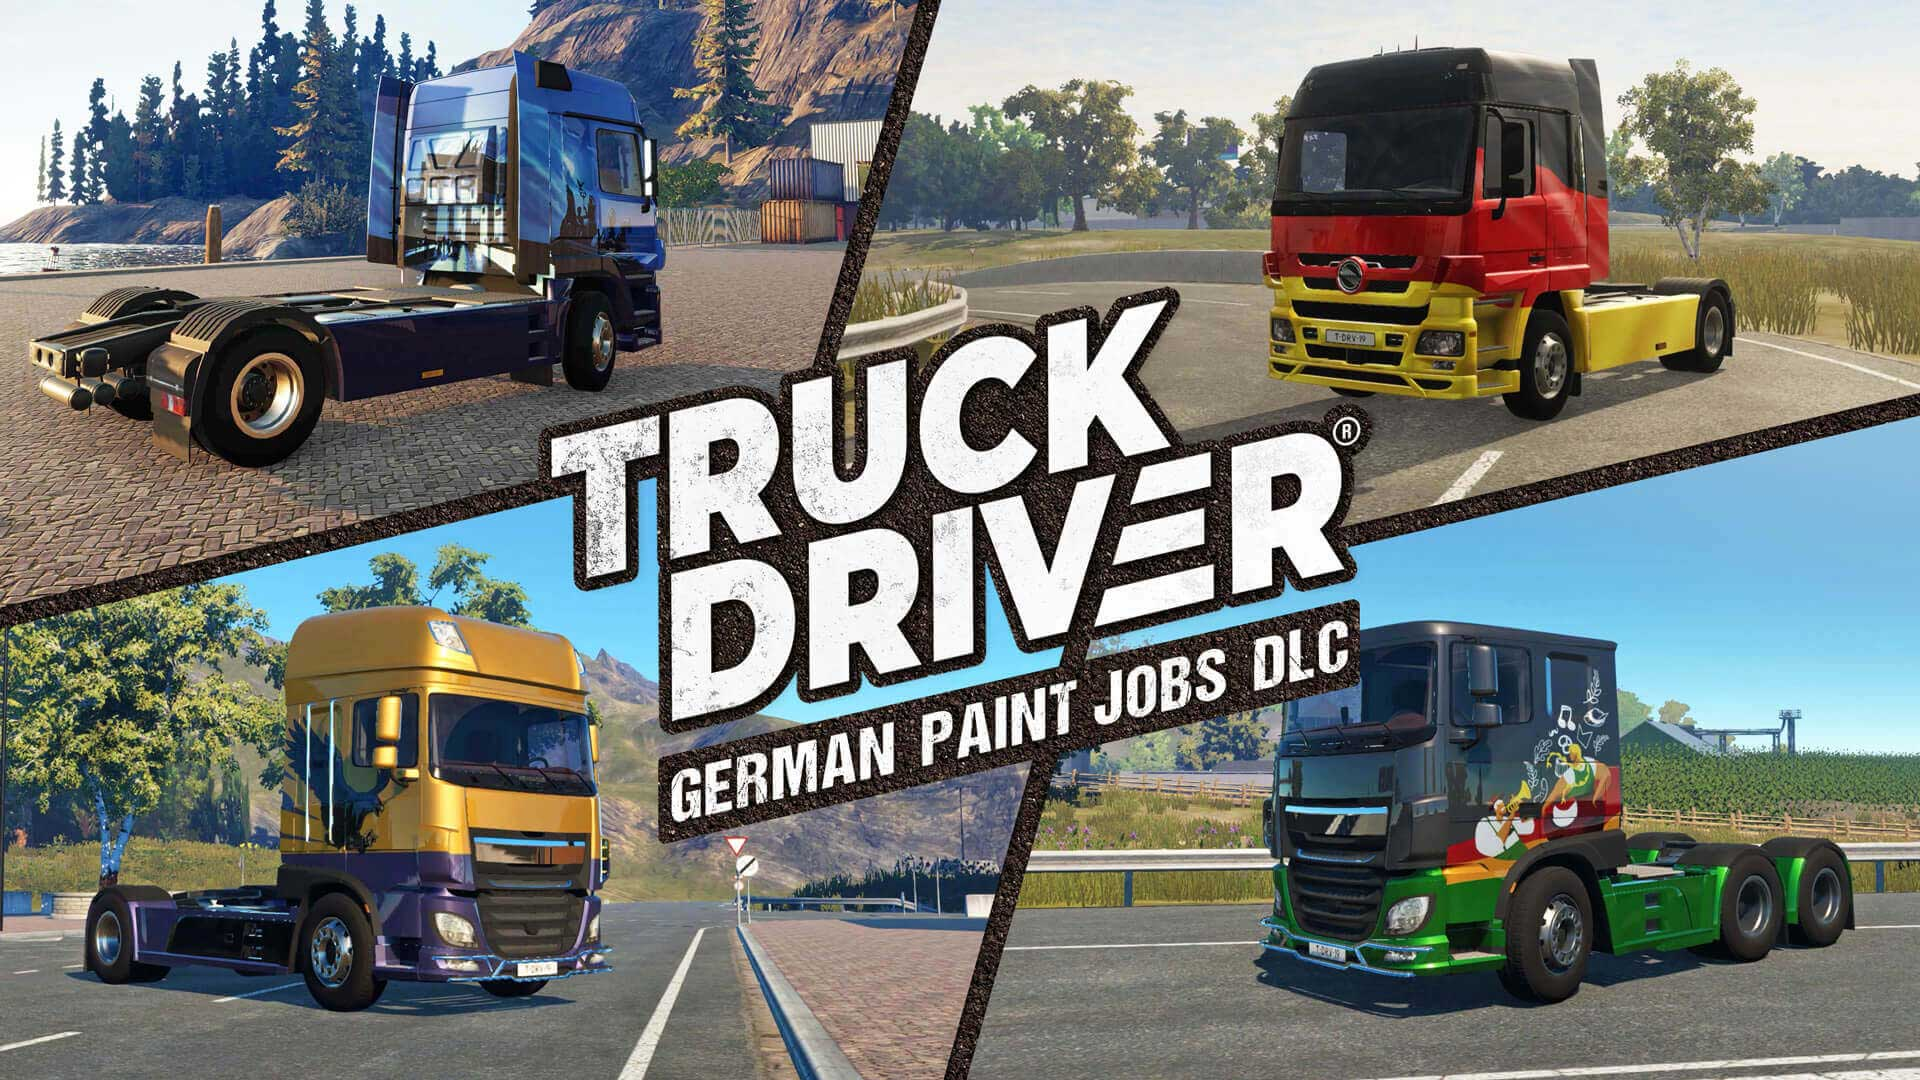 SOEDESCO® brings Oktoberfest to Truck Driver® with the 'German Paint Jobs' DLC